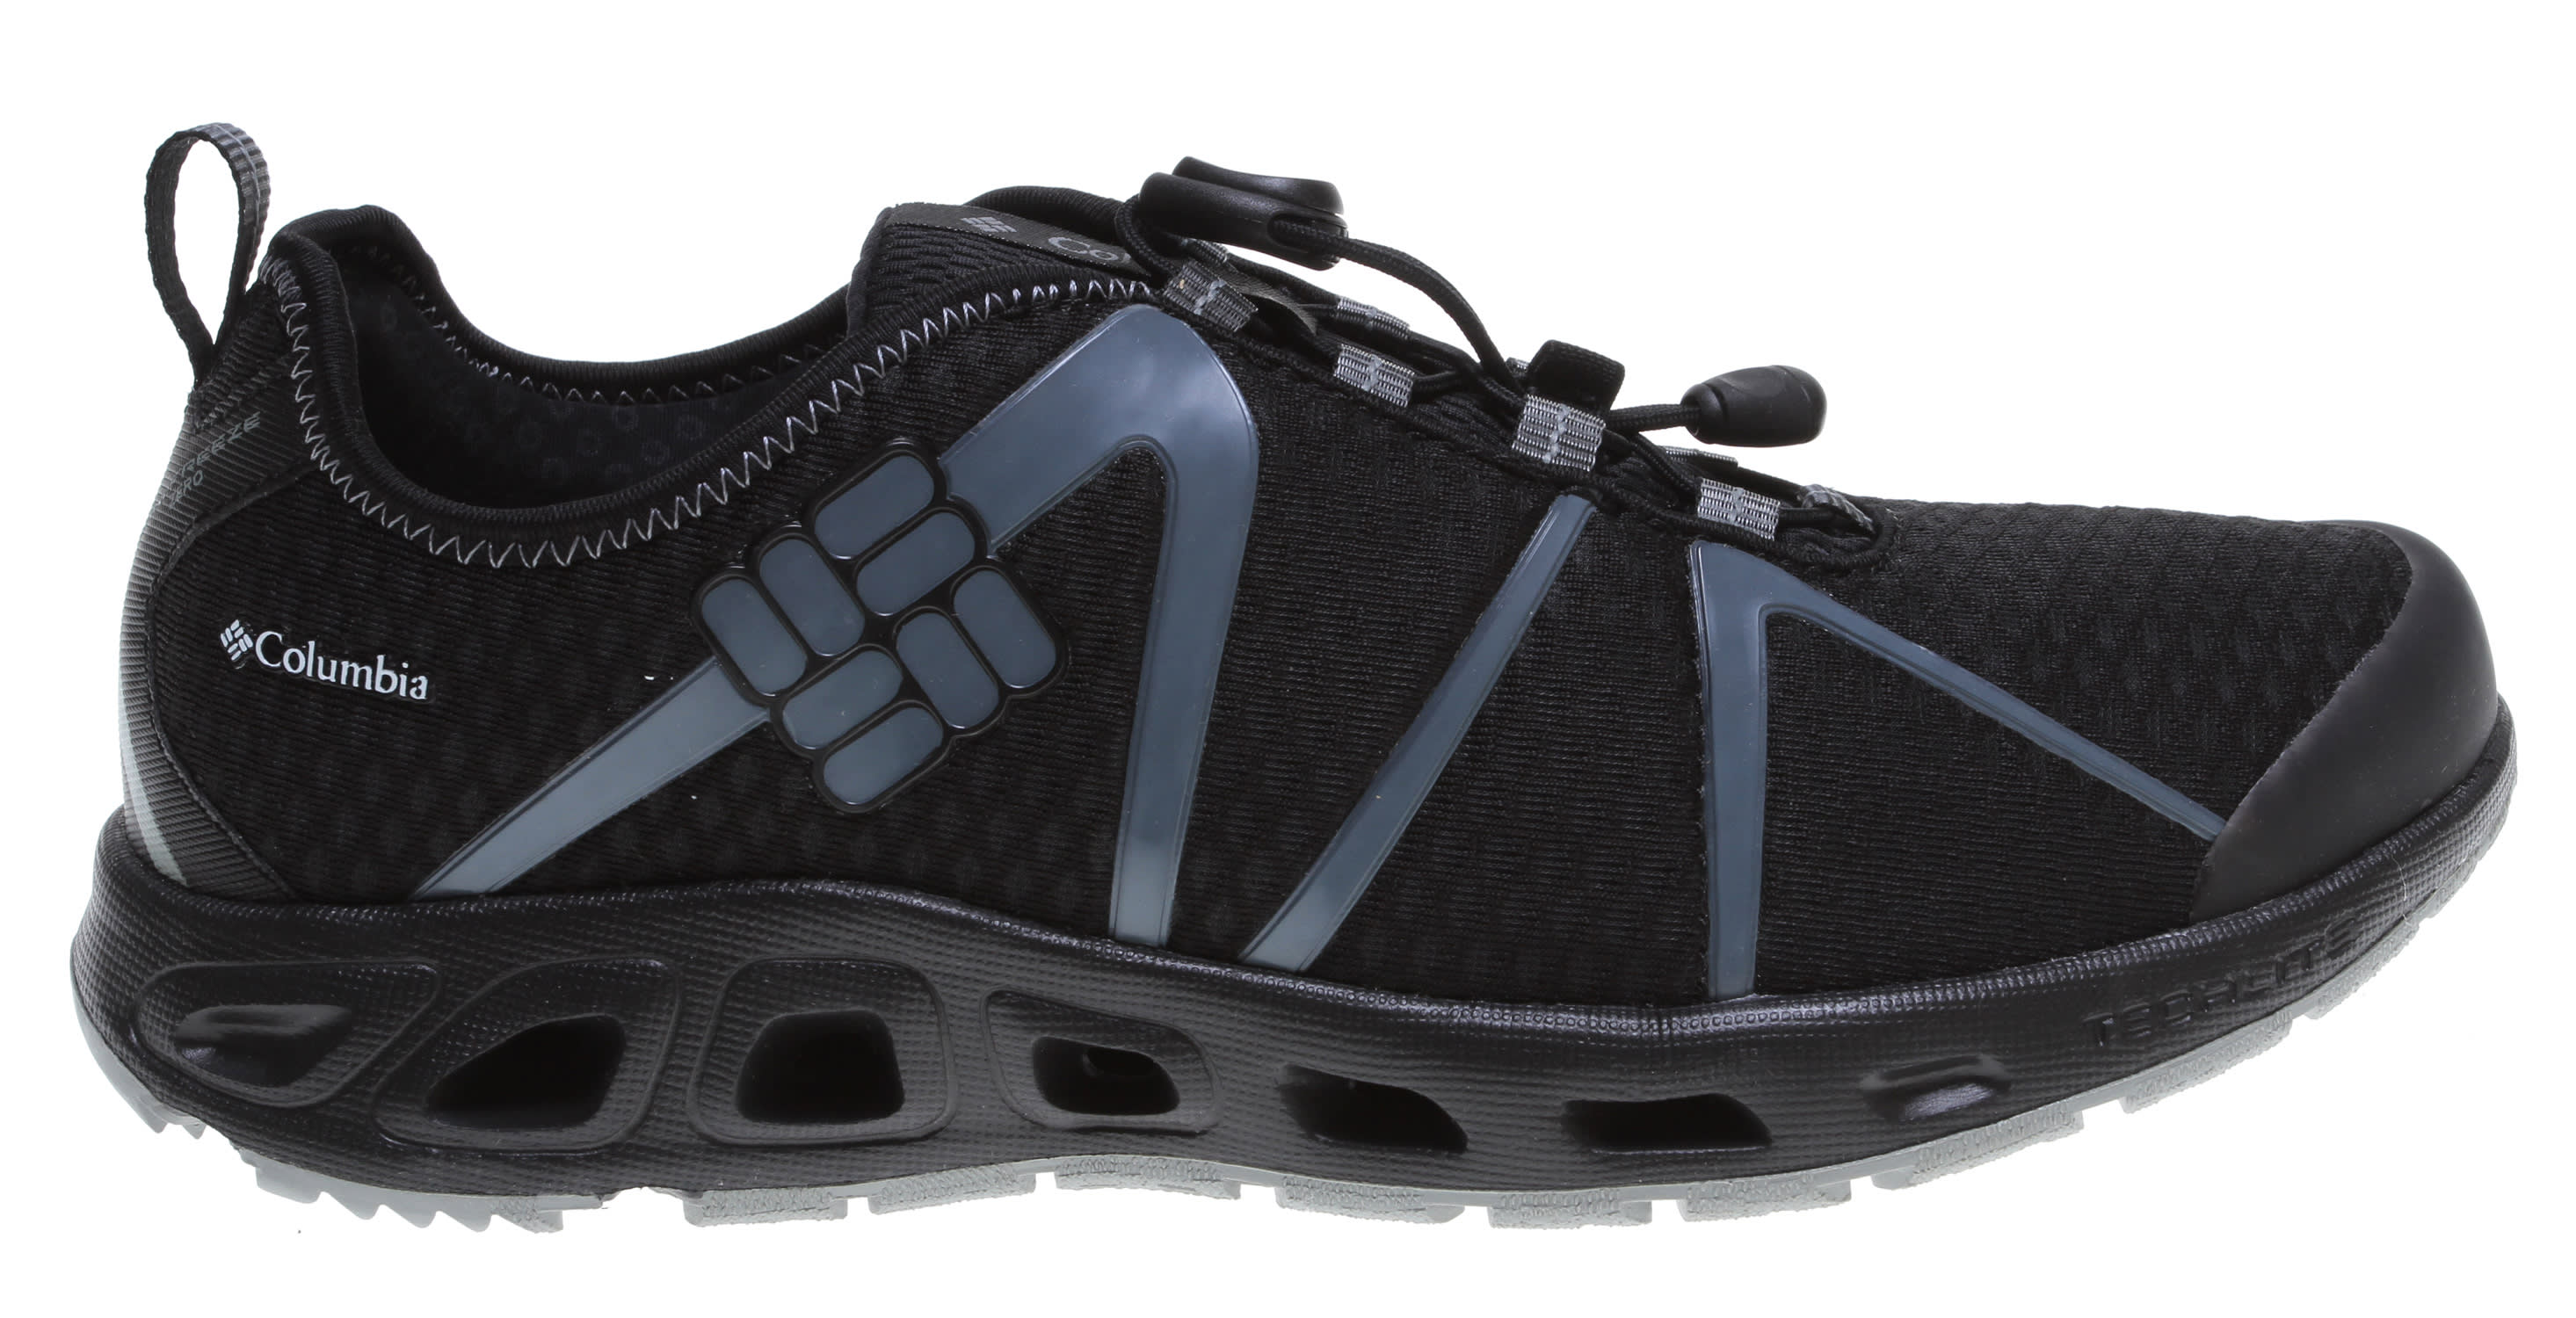 6eec46a2a9ba Columbia Powerdrain Cool Water Shoes - thumbnail 1